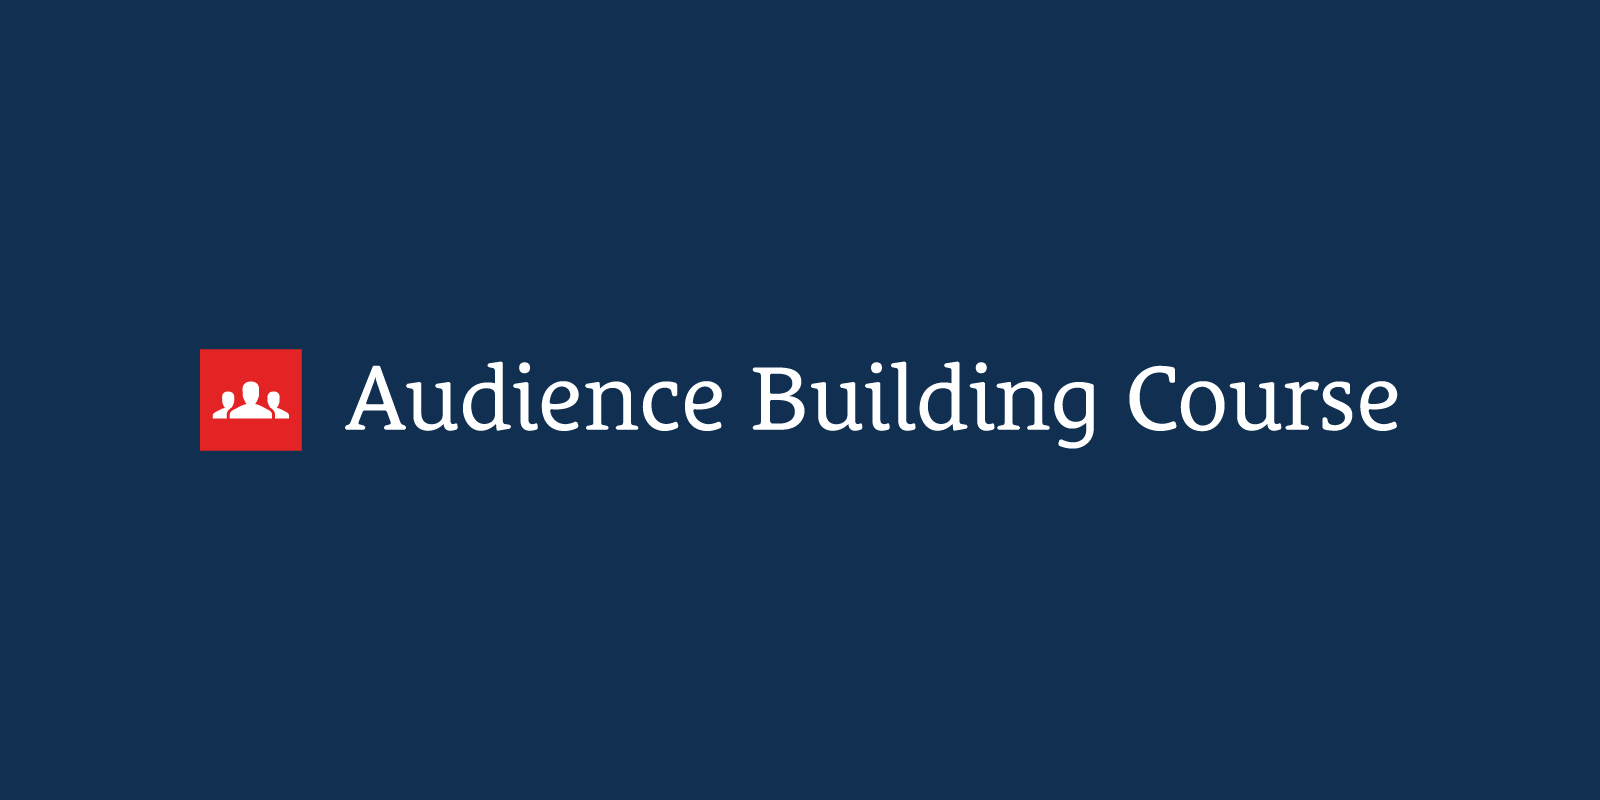 Audience Building Course